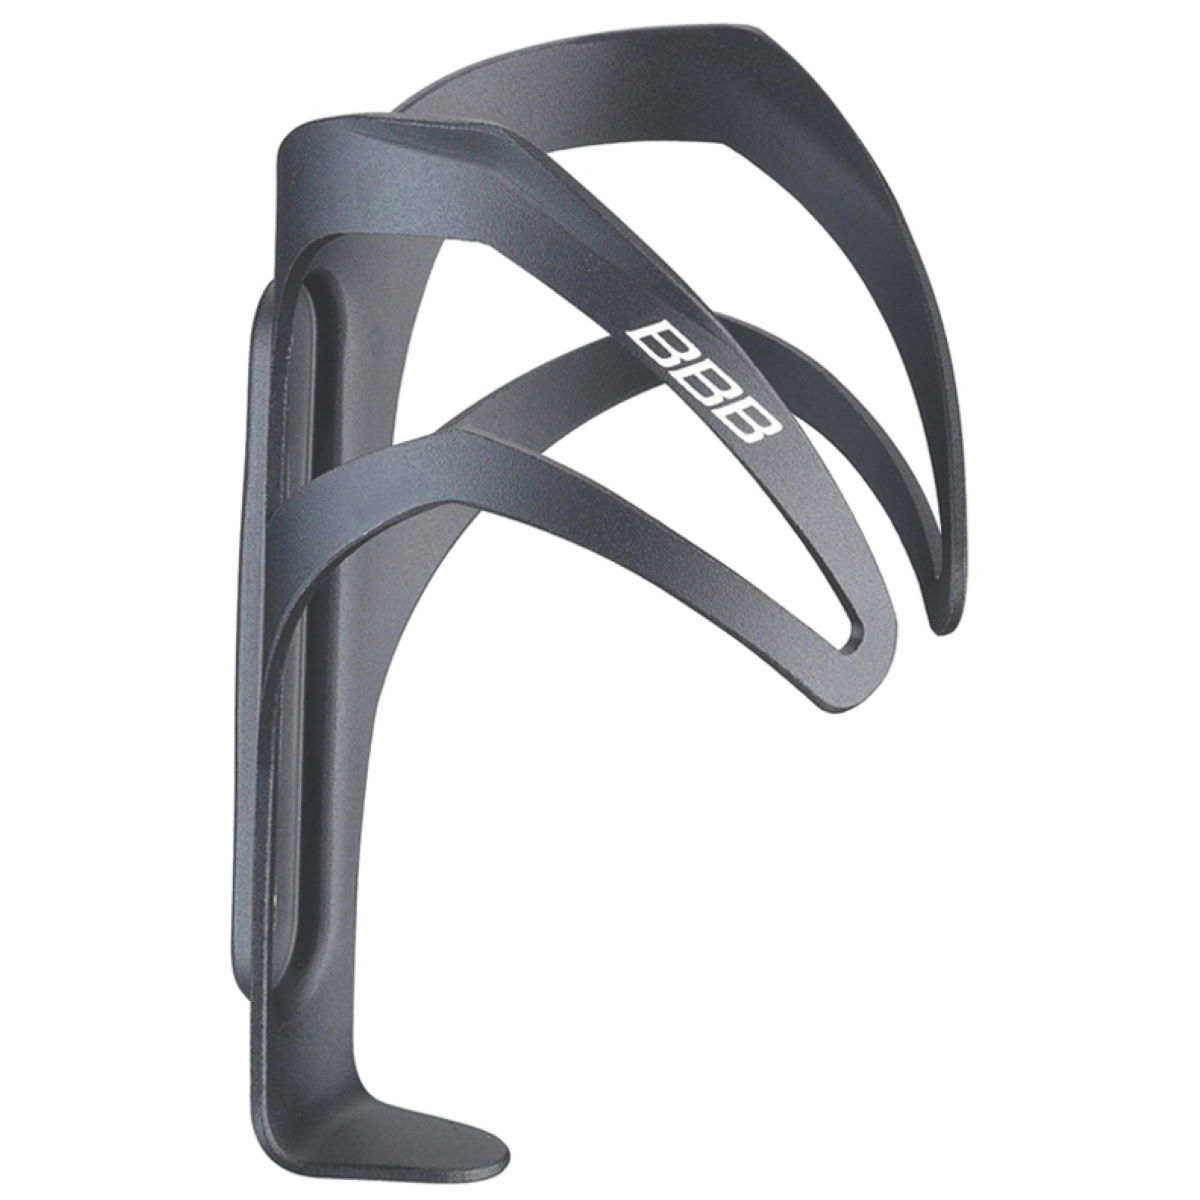 Porte-bidon BBB SpeedCage BBC-31 - Taille unique Black Anodised